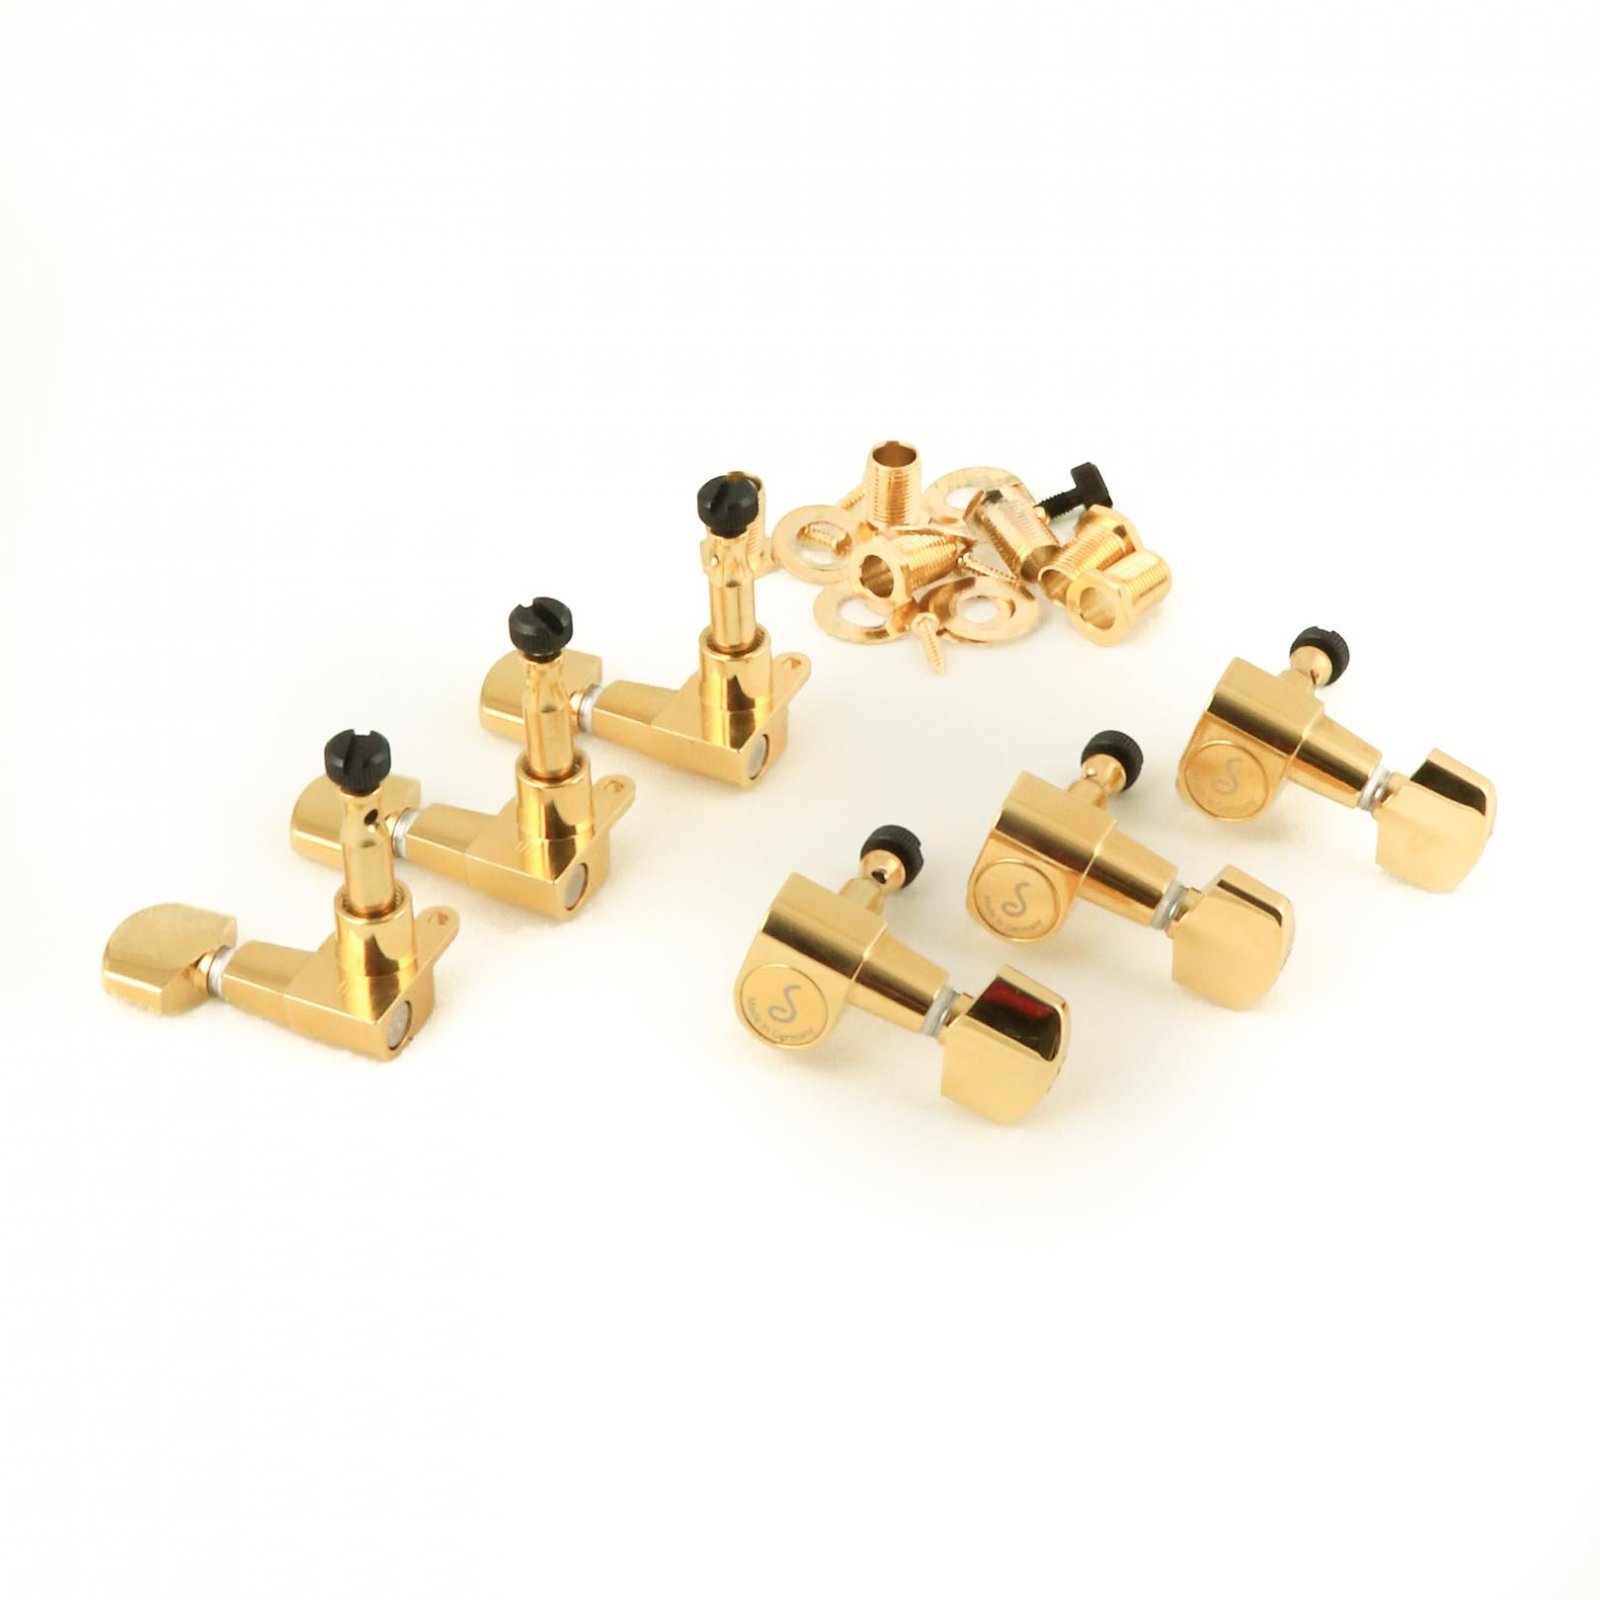 MannMade USA Schaller Low Mass Locking Tuner Set - Gold